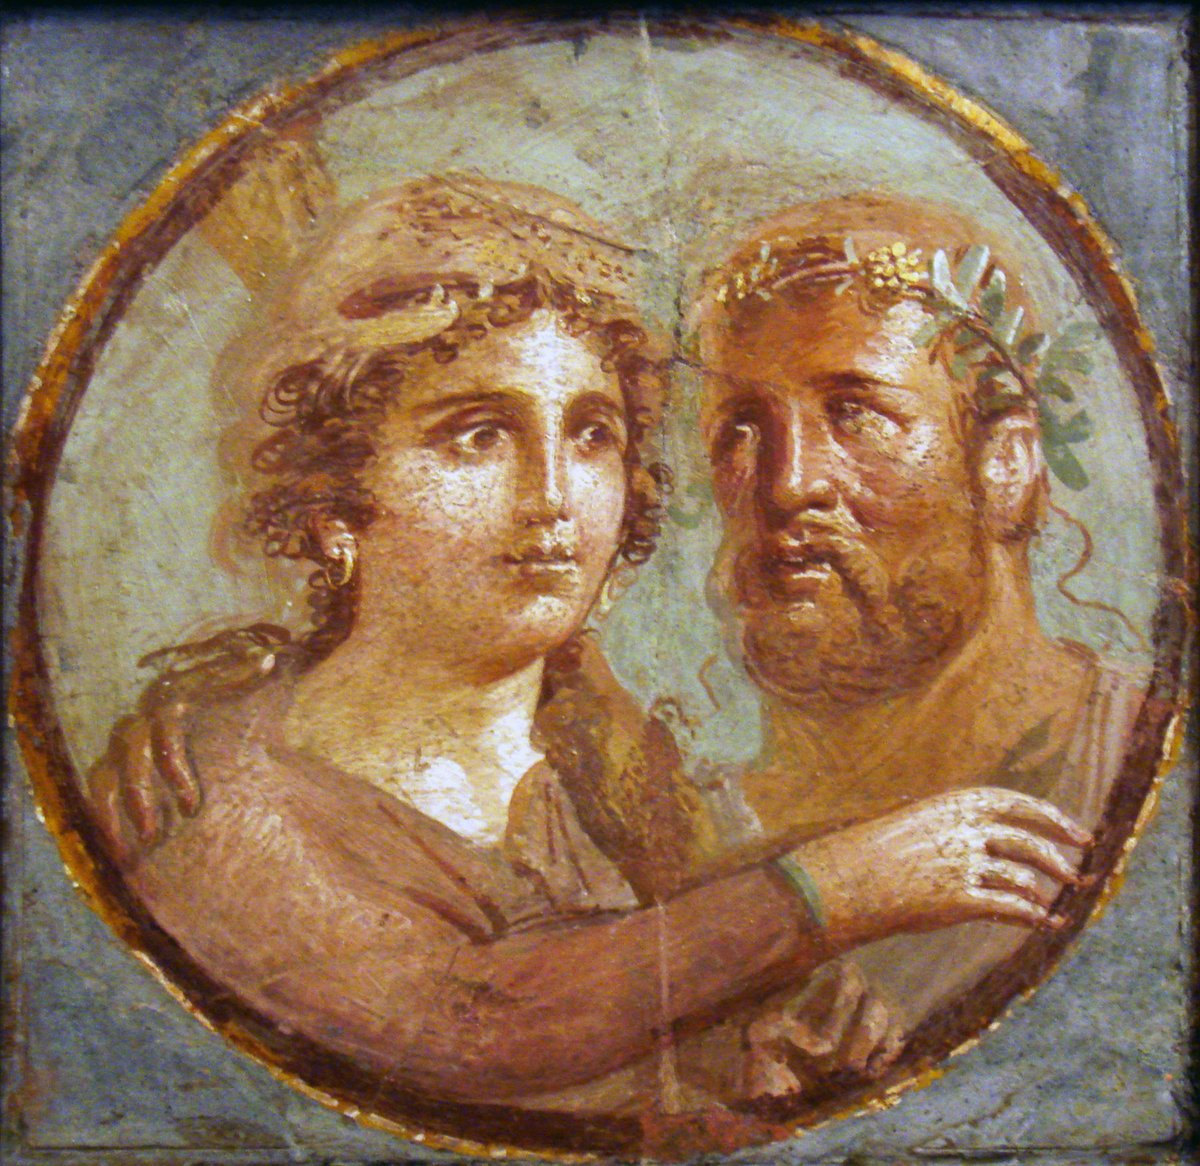 Heracles and Omphale, Roman fresco, Pompeian Fourth Style (45–79 AD), Naples National Archaeological Museum, Italy - two figures looking at each other, in Roman garb.